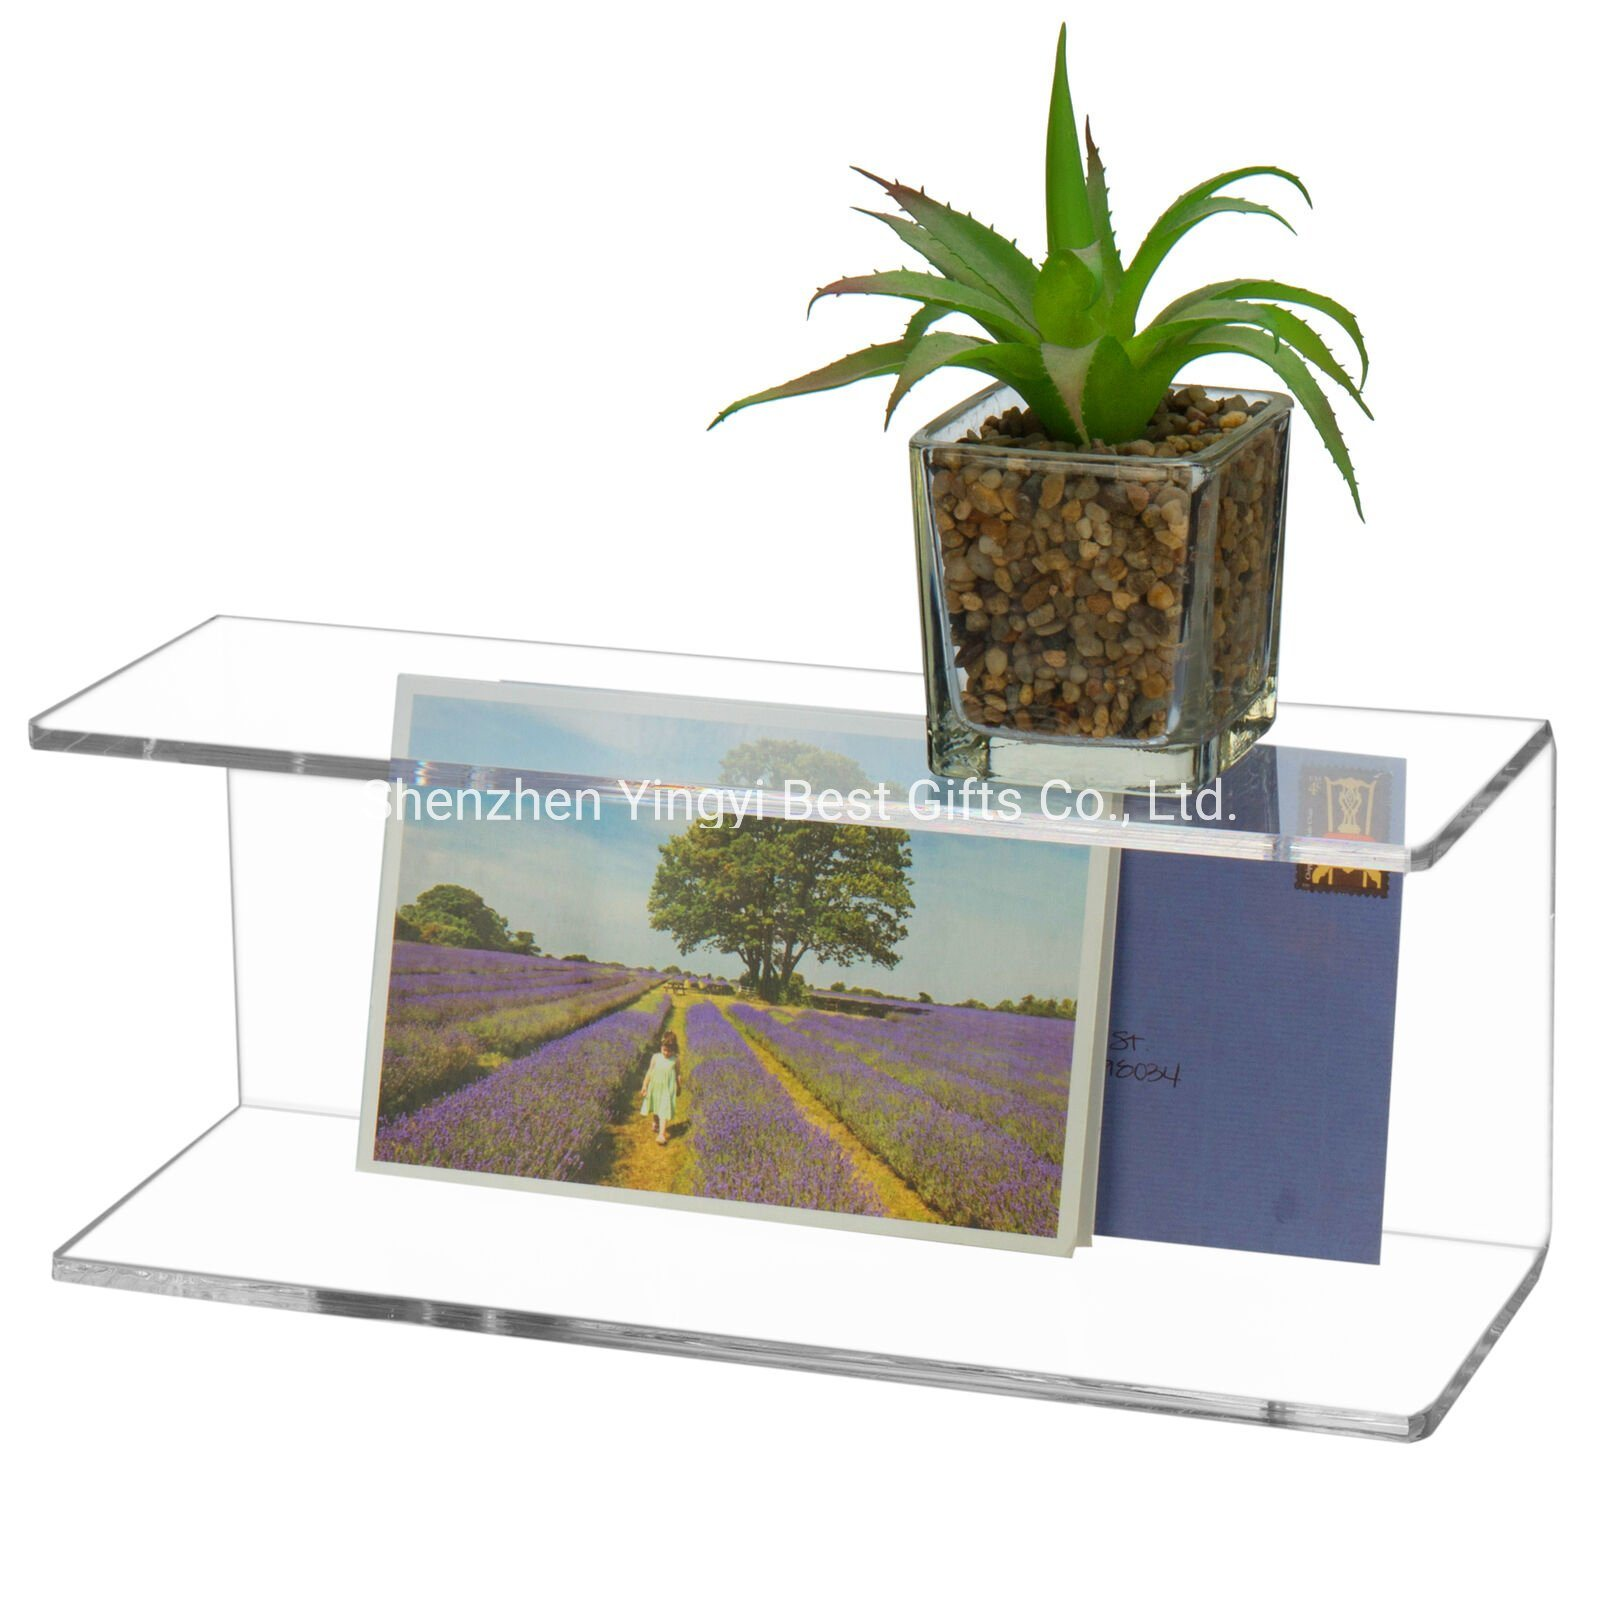 Hot Item Custom 2 Tier Clear Wall Mounted Acrylic Display Shelves Floating Shelf Racks